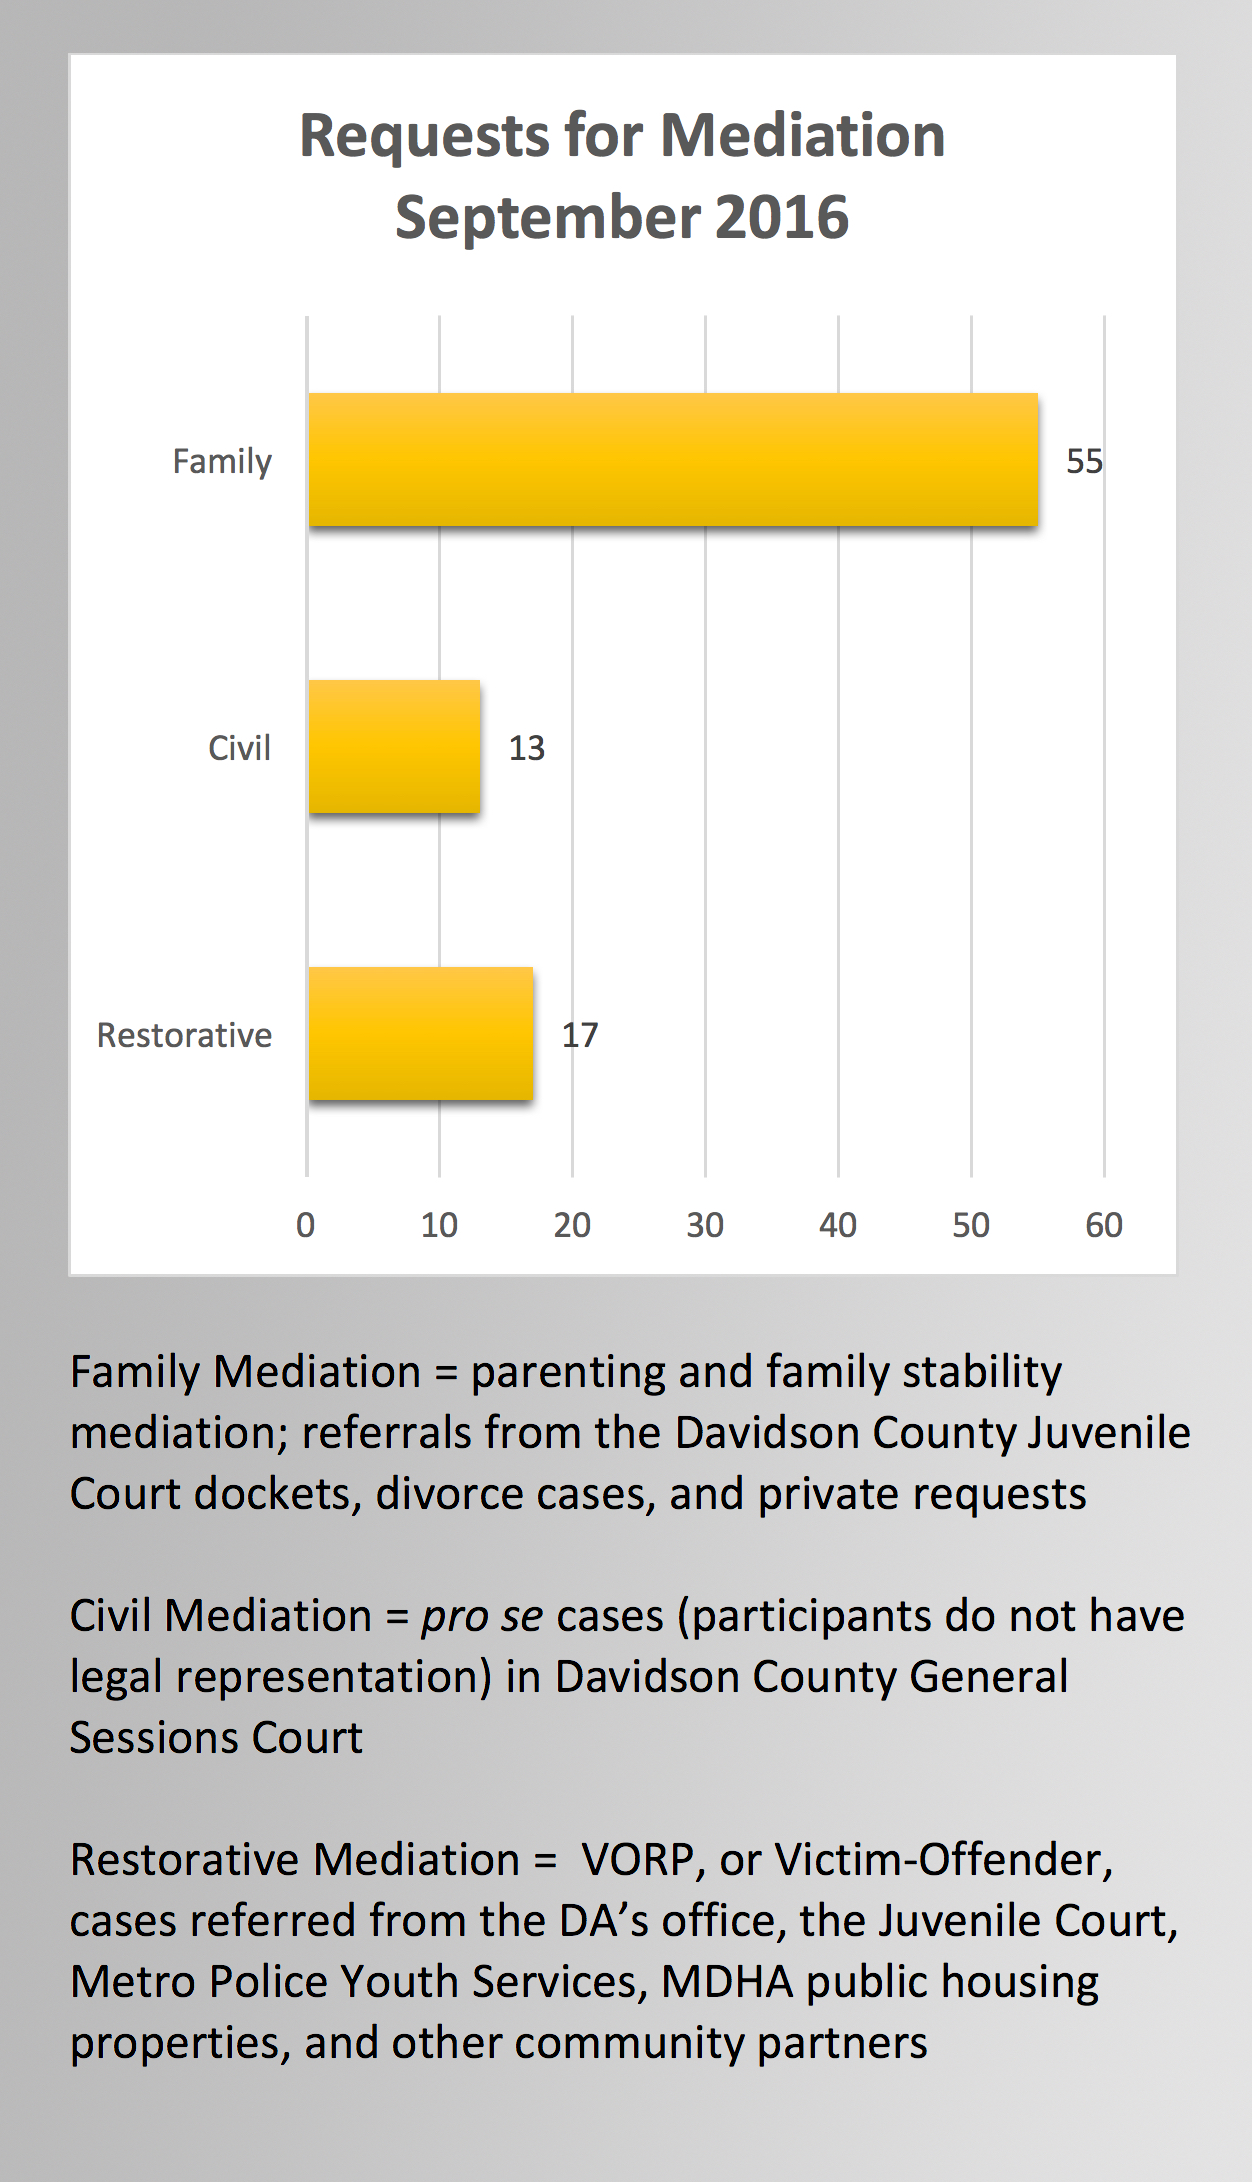 mediation-referrals-past-month